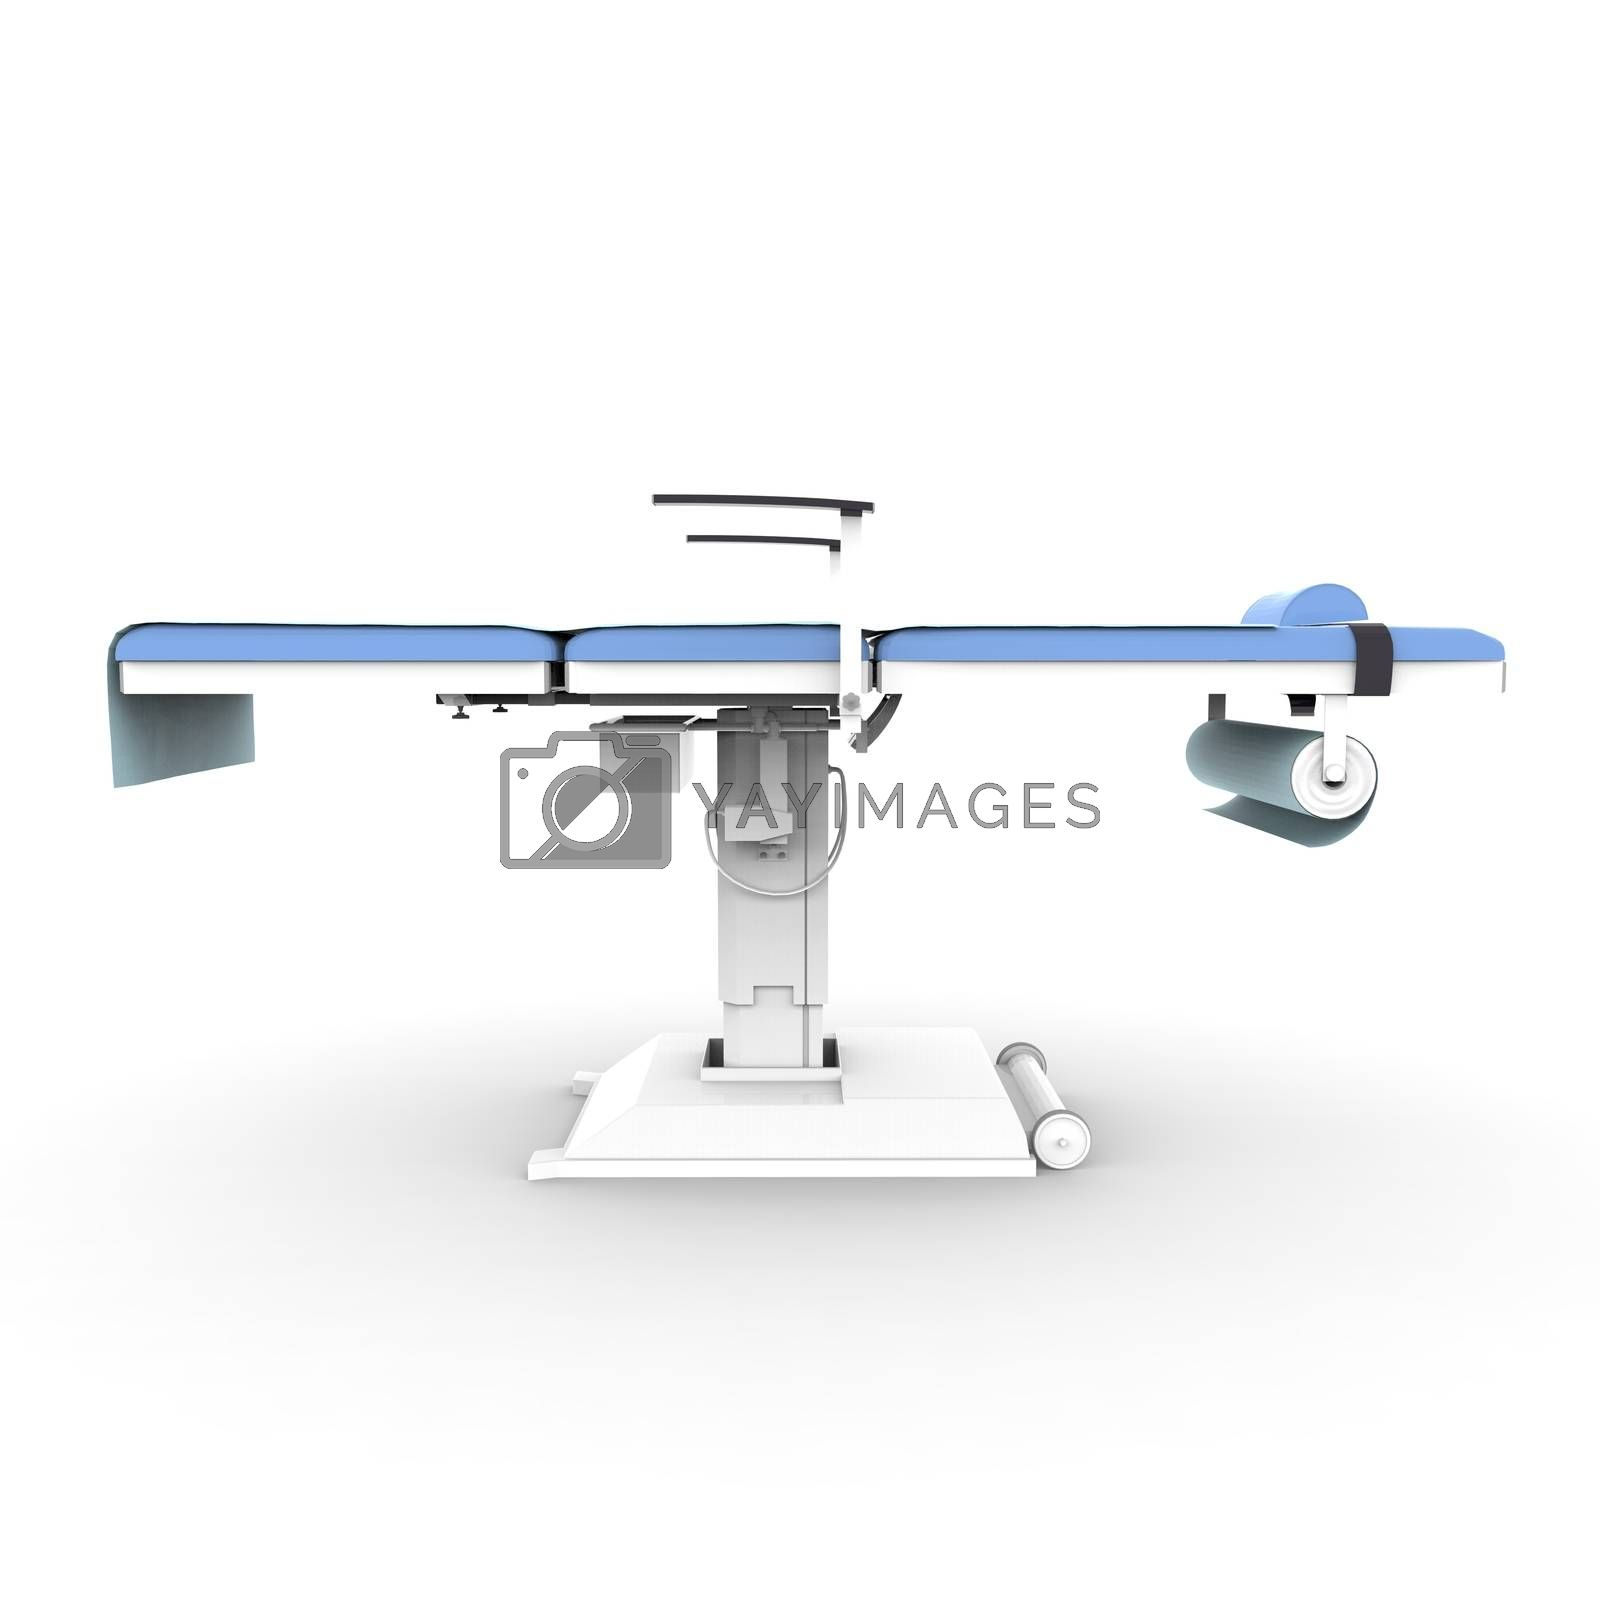 New and modern medical table on a white background